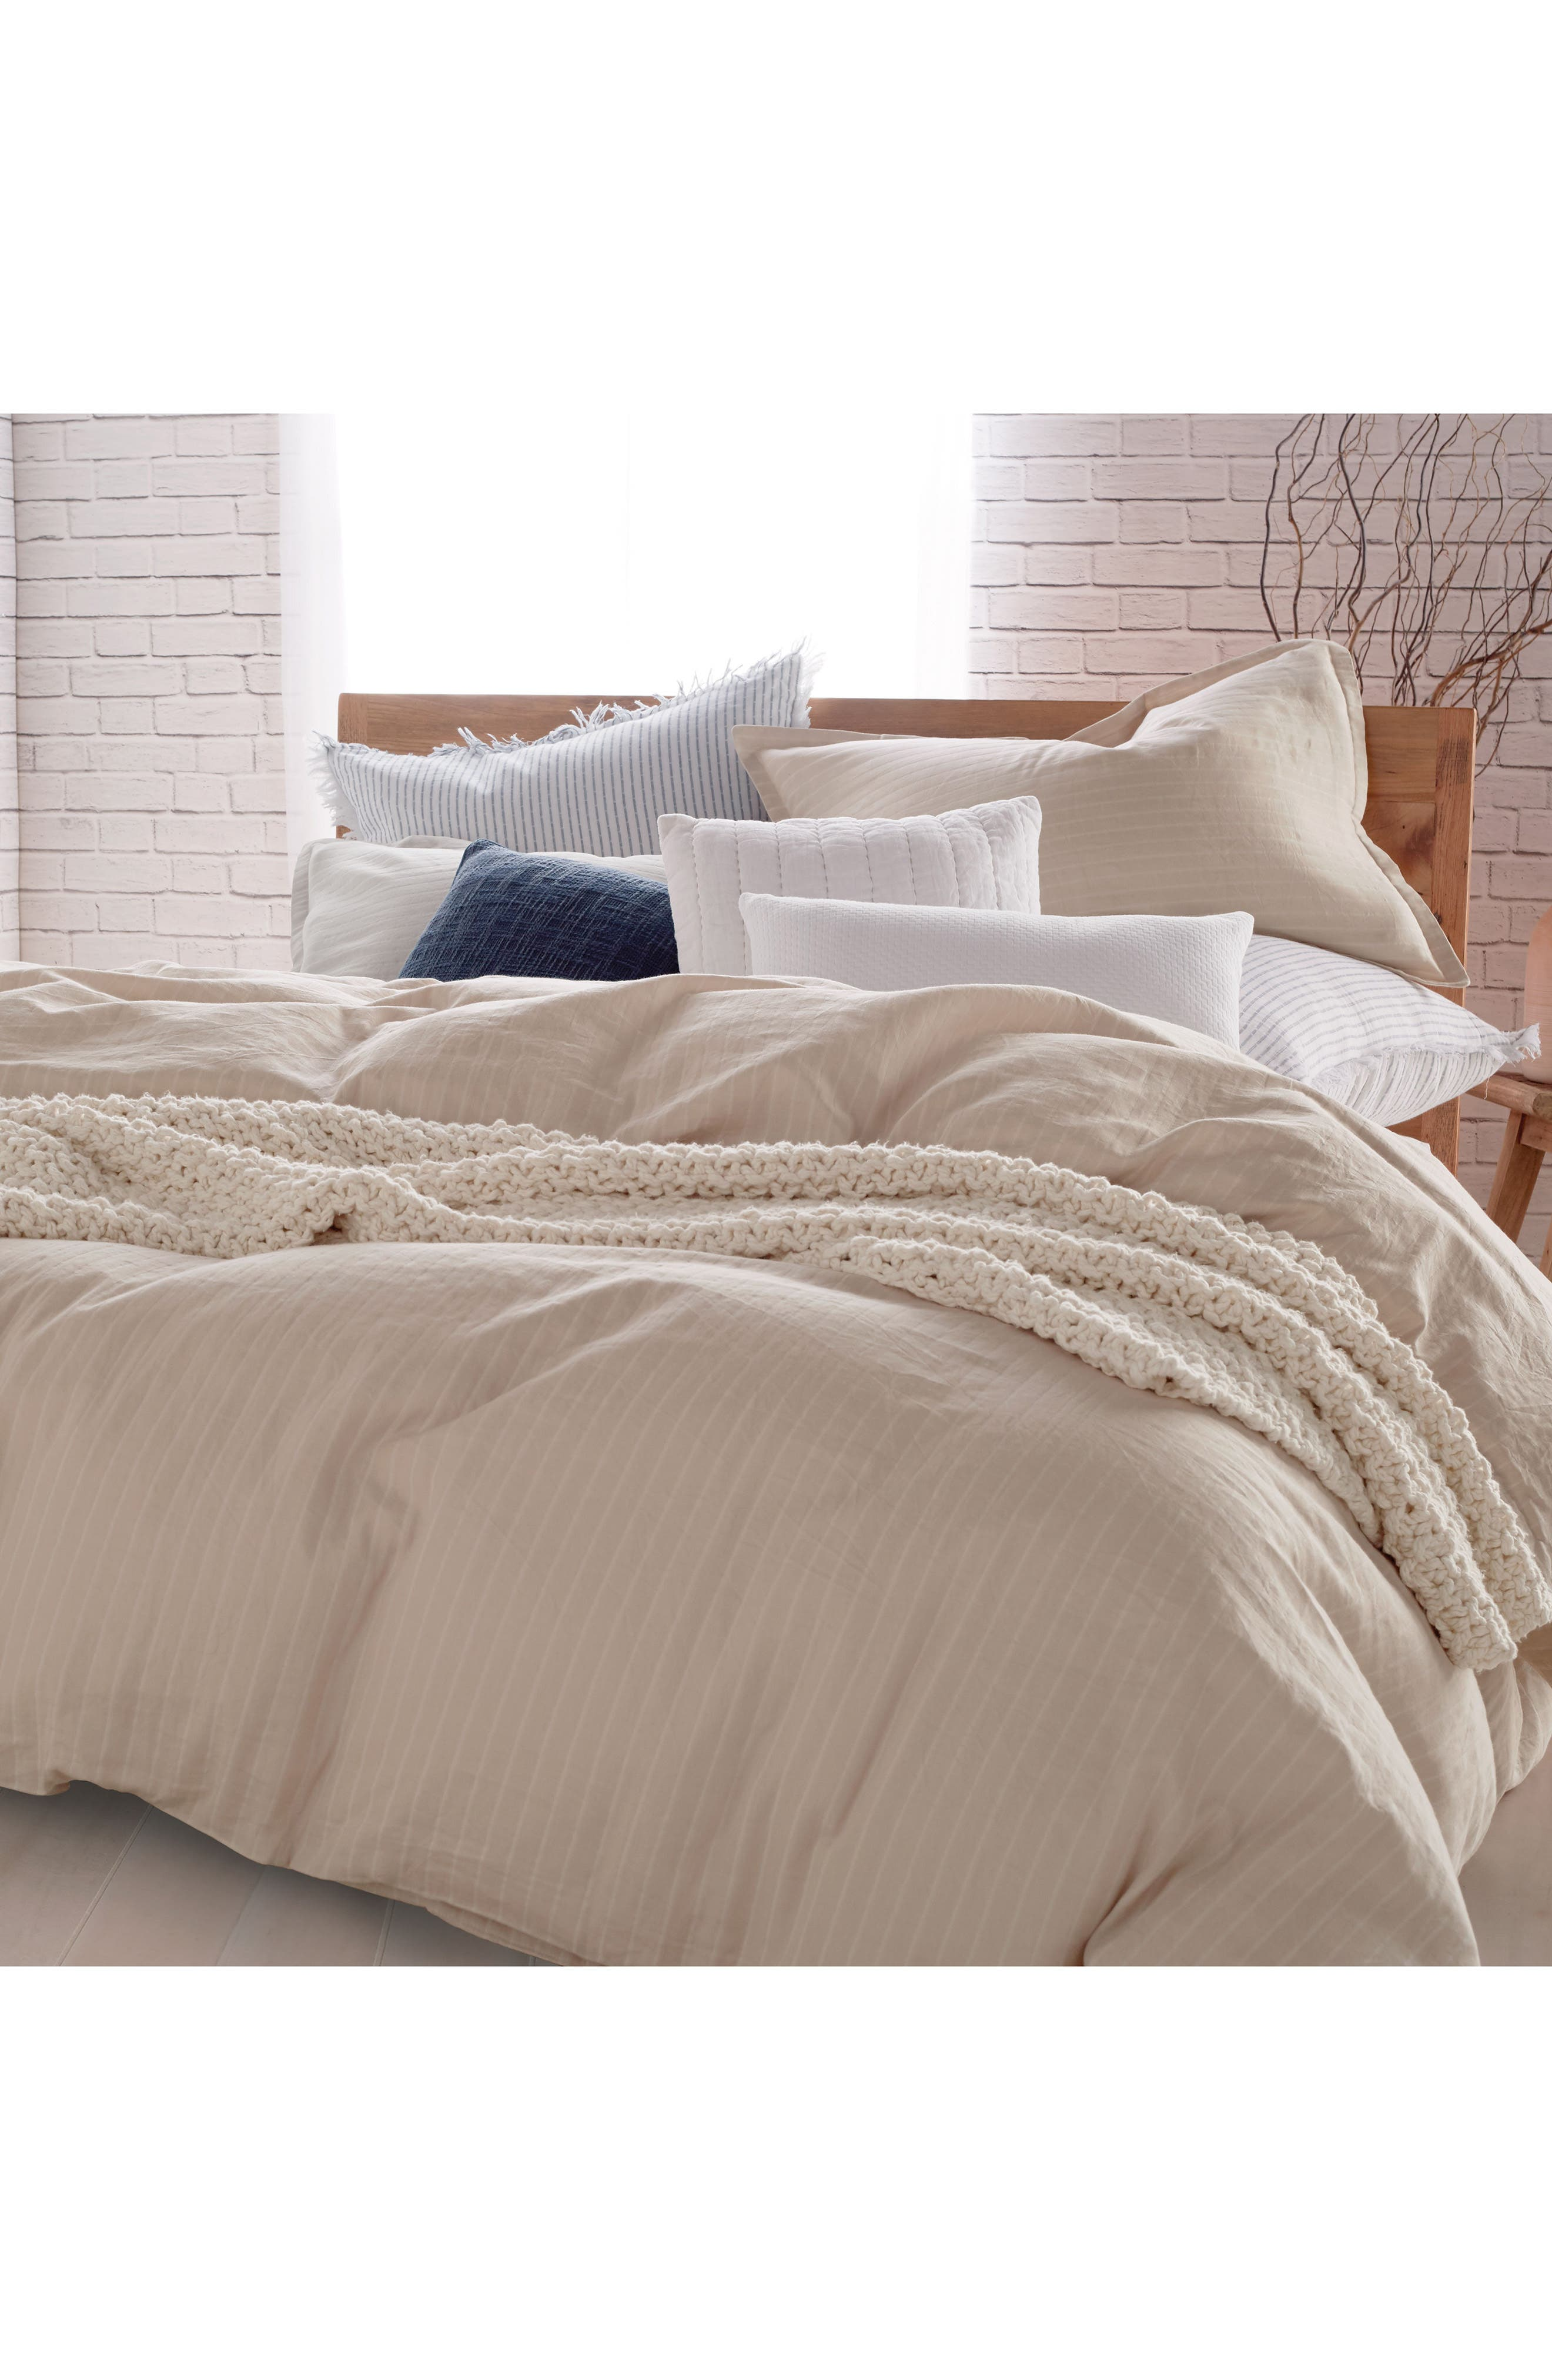 com brown nordstrom kitchen rosie amazon bedding bed color world my cover dp duvet home